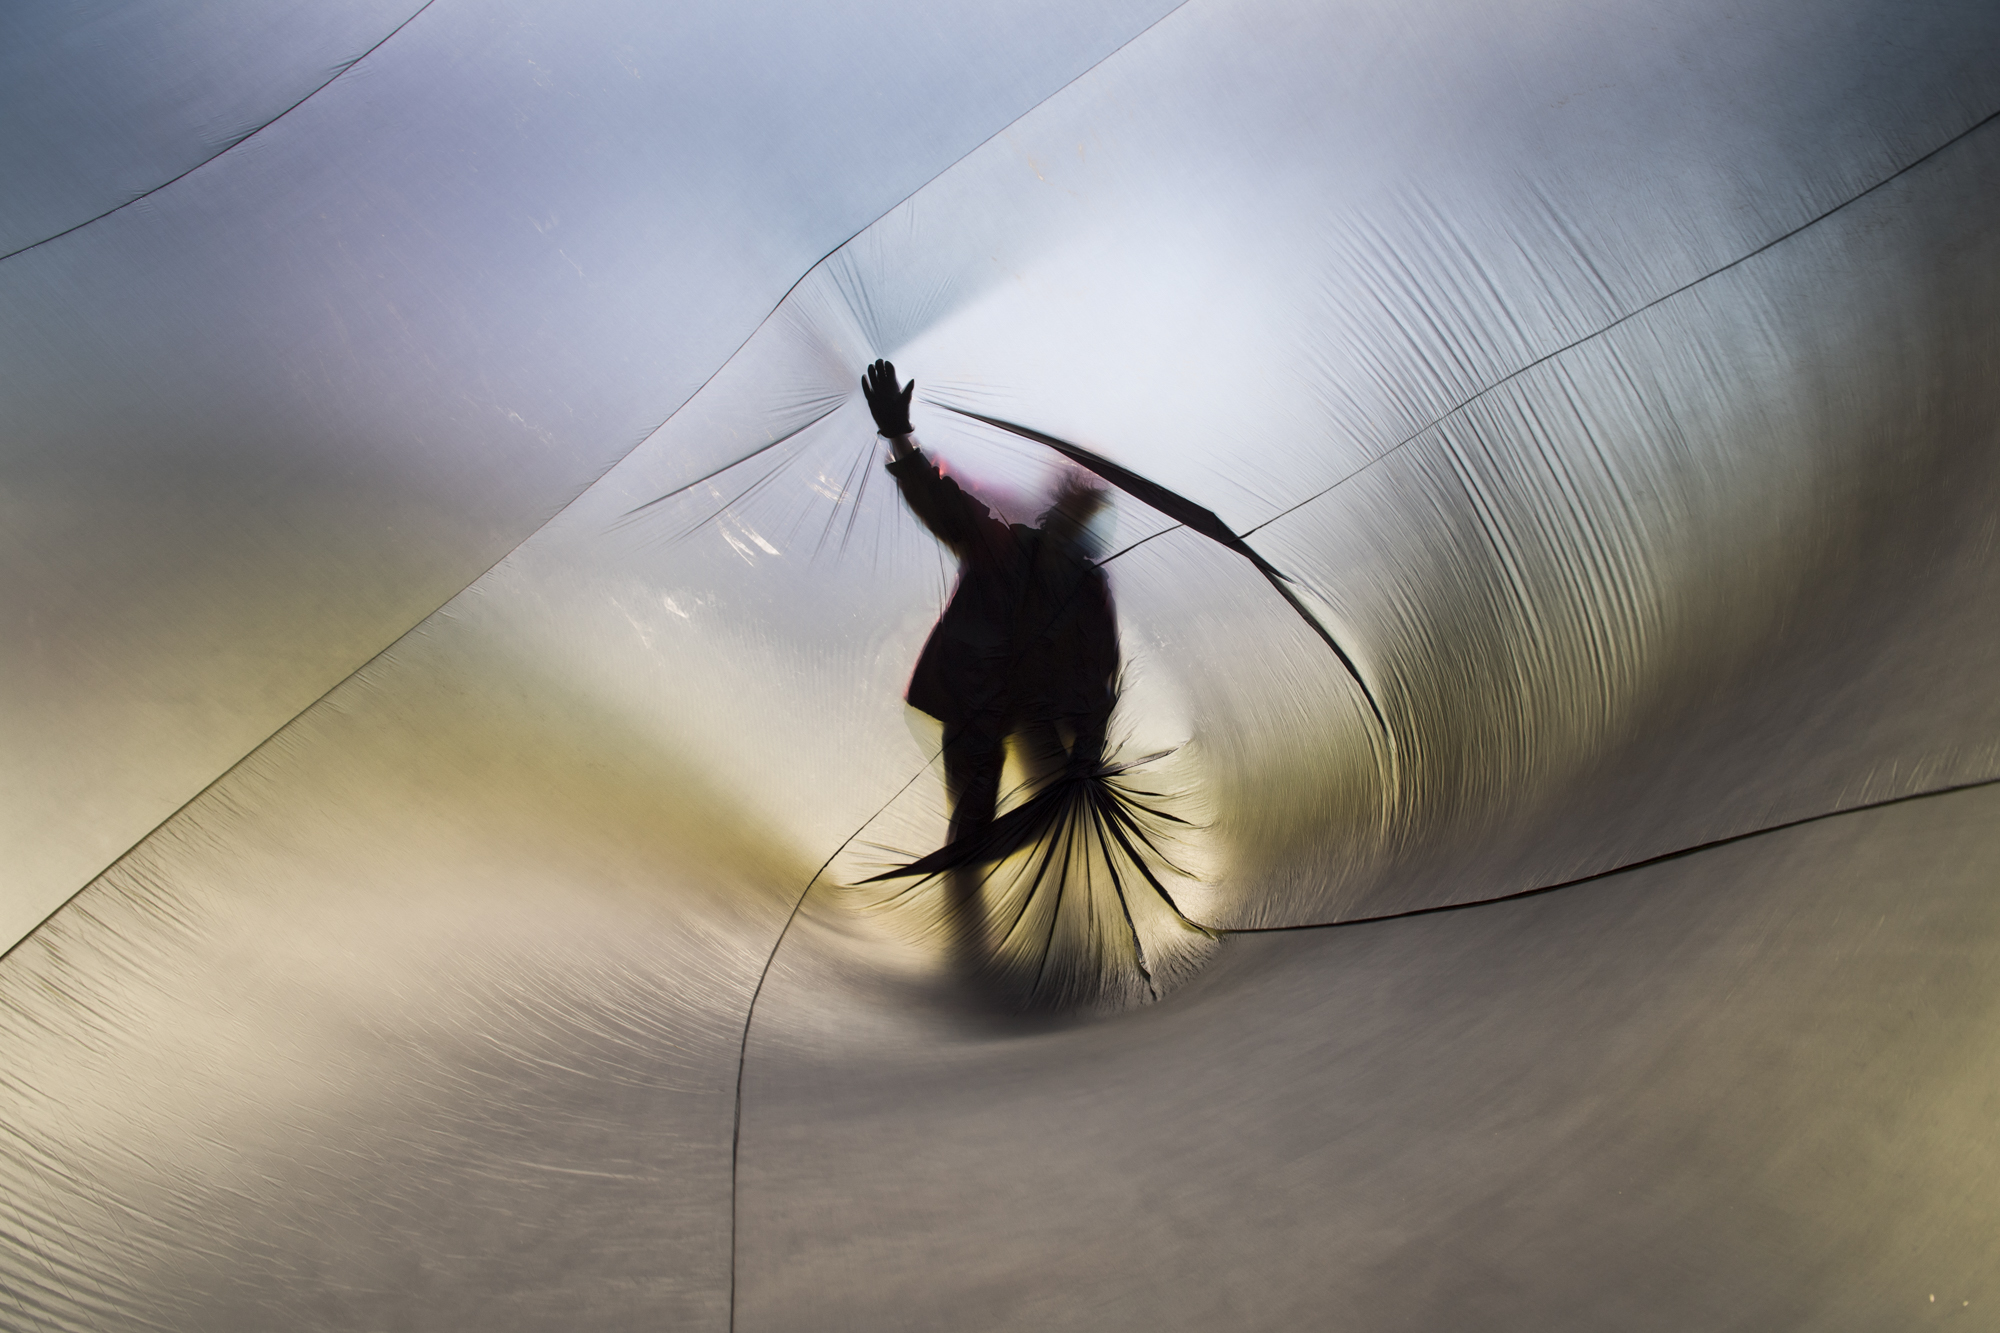 An Aerocene sculpture seen from the inside